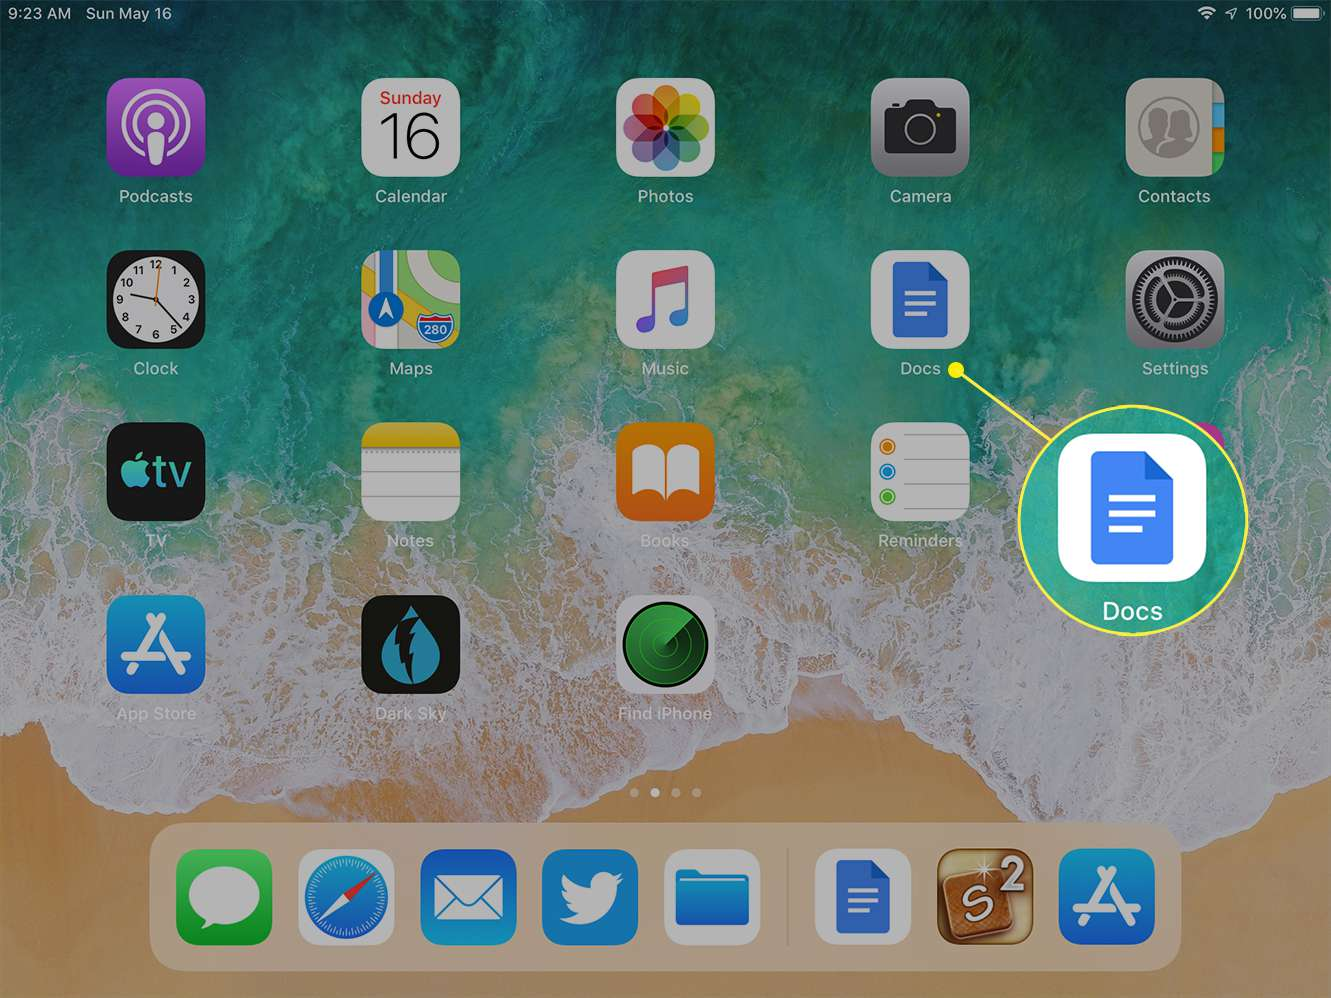 The iPad home screen with the Docs app highlighted